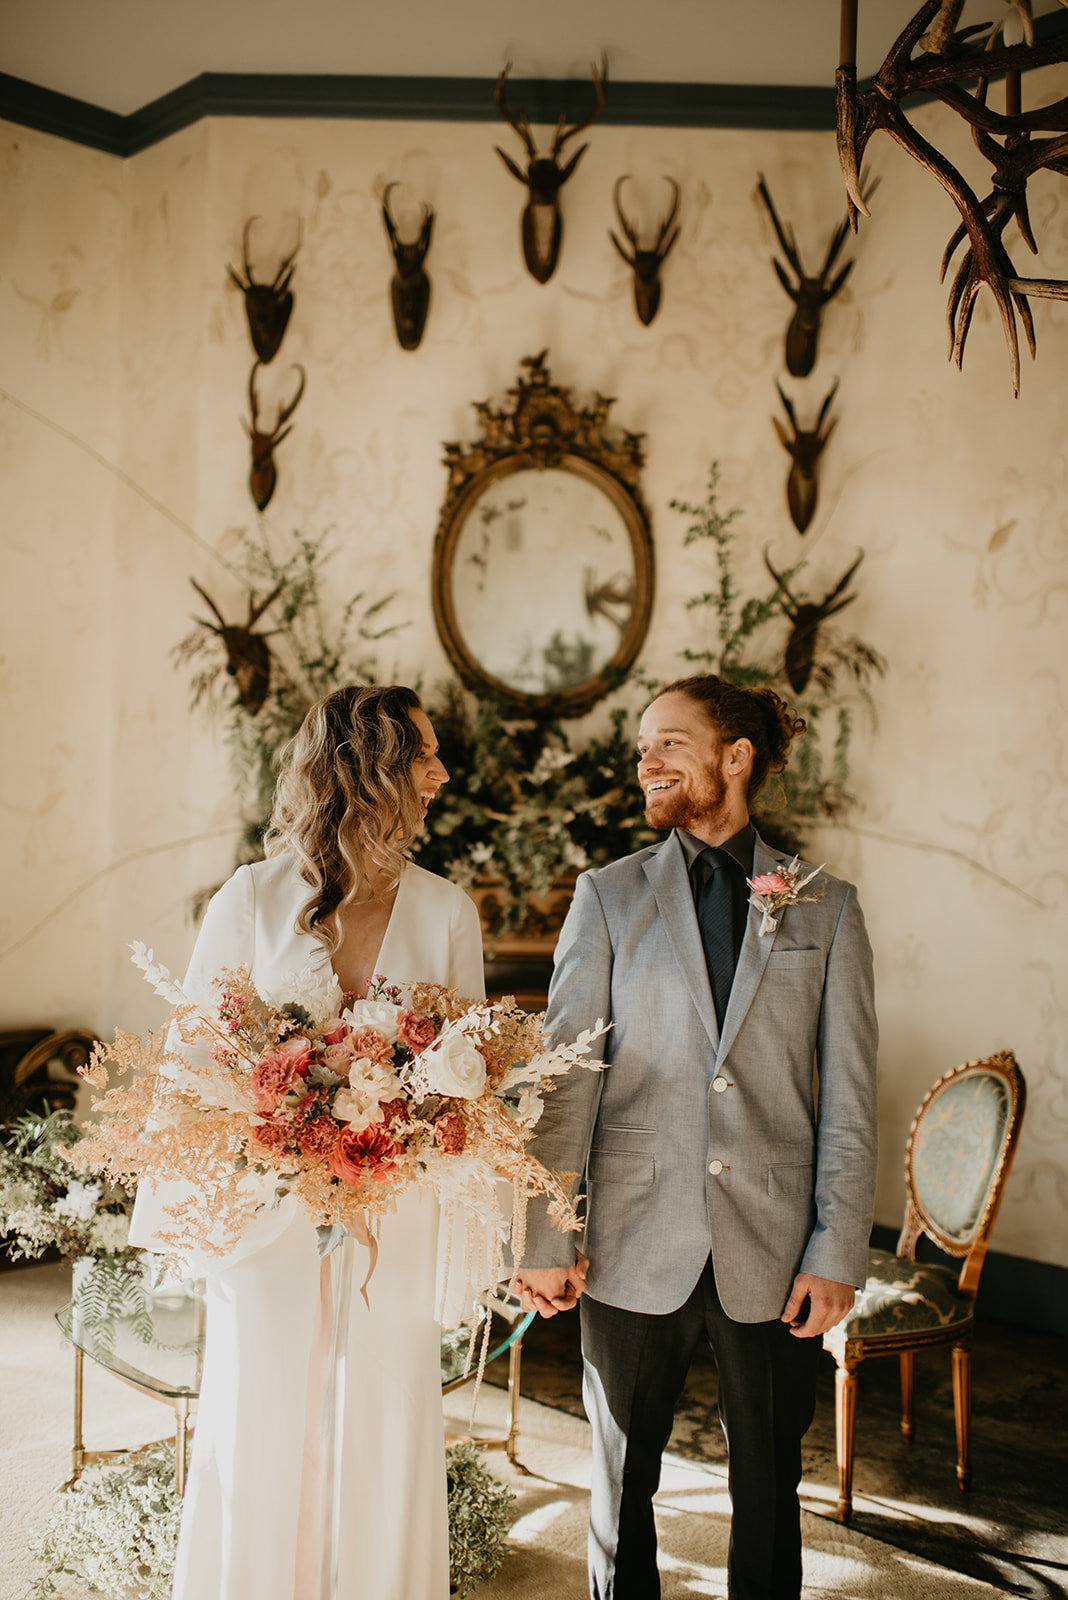 Britty + Beau - Elopement - The Ruins_ Seattle_ WA - Kamra Fuller Photography - Runaway With Me Elopement Collective-194